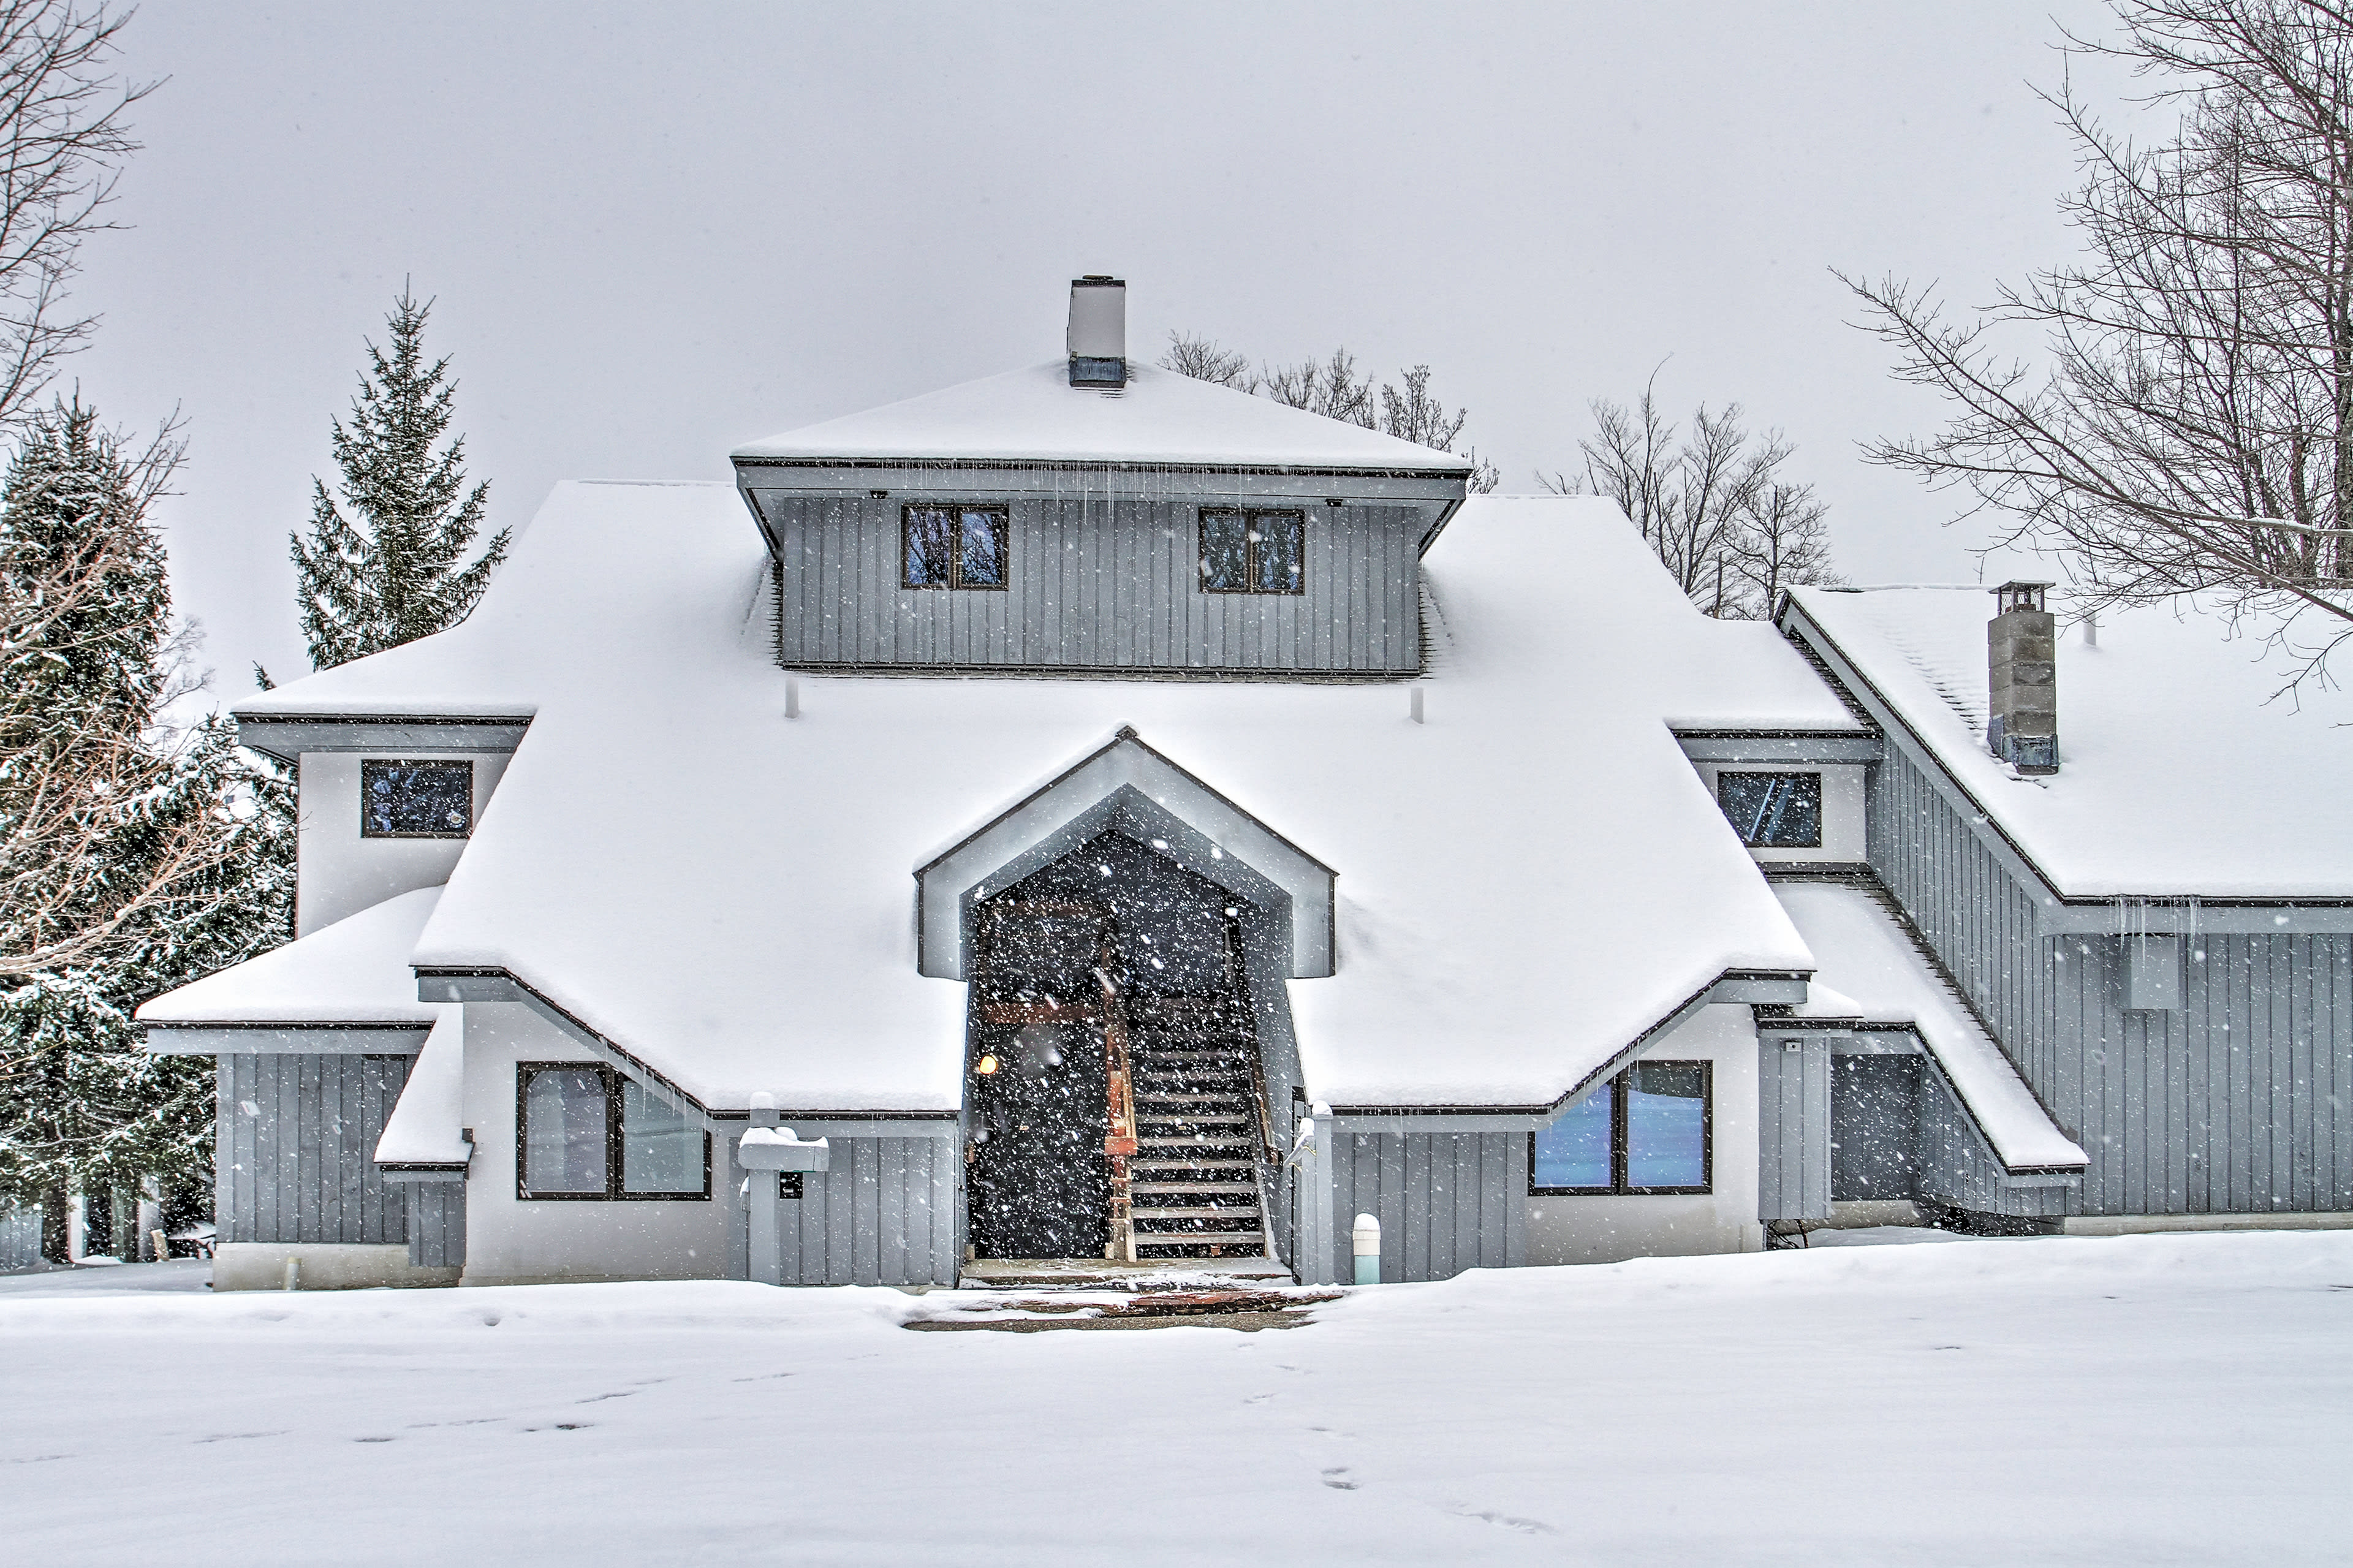 No matter the season, this condo is the perfect Vermont home-away-from-home!